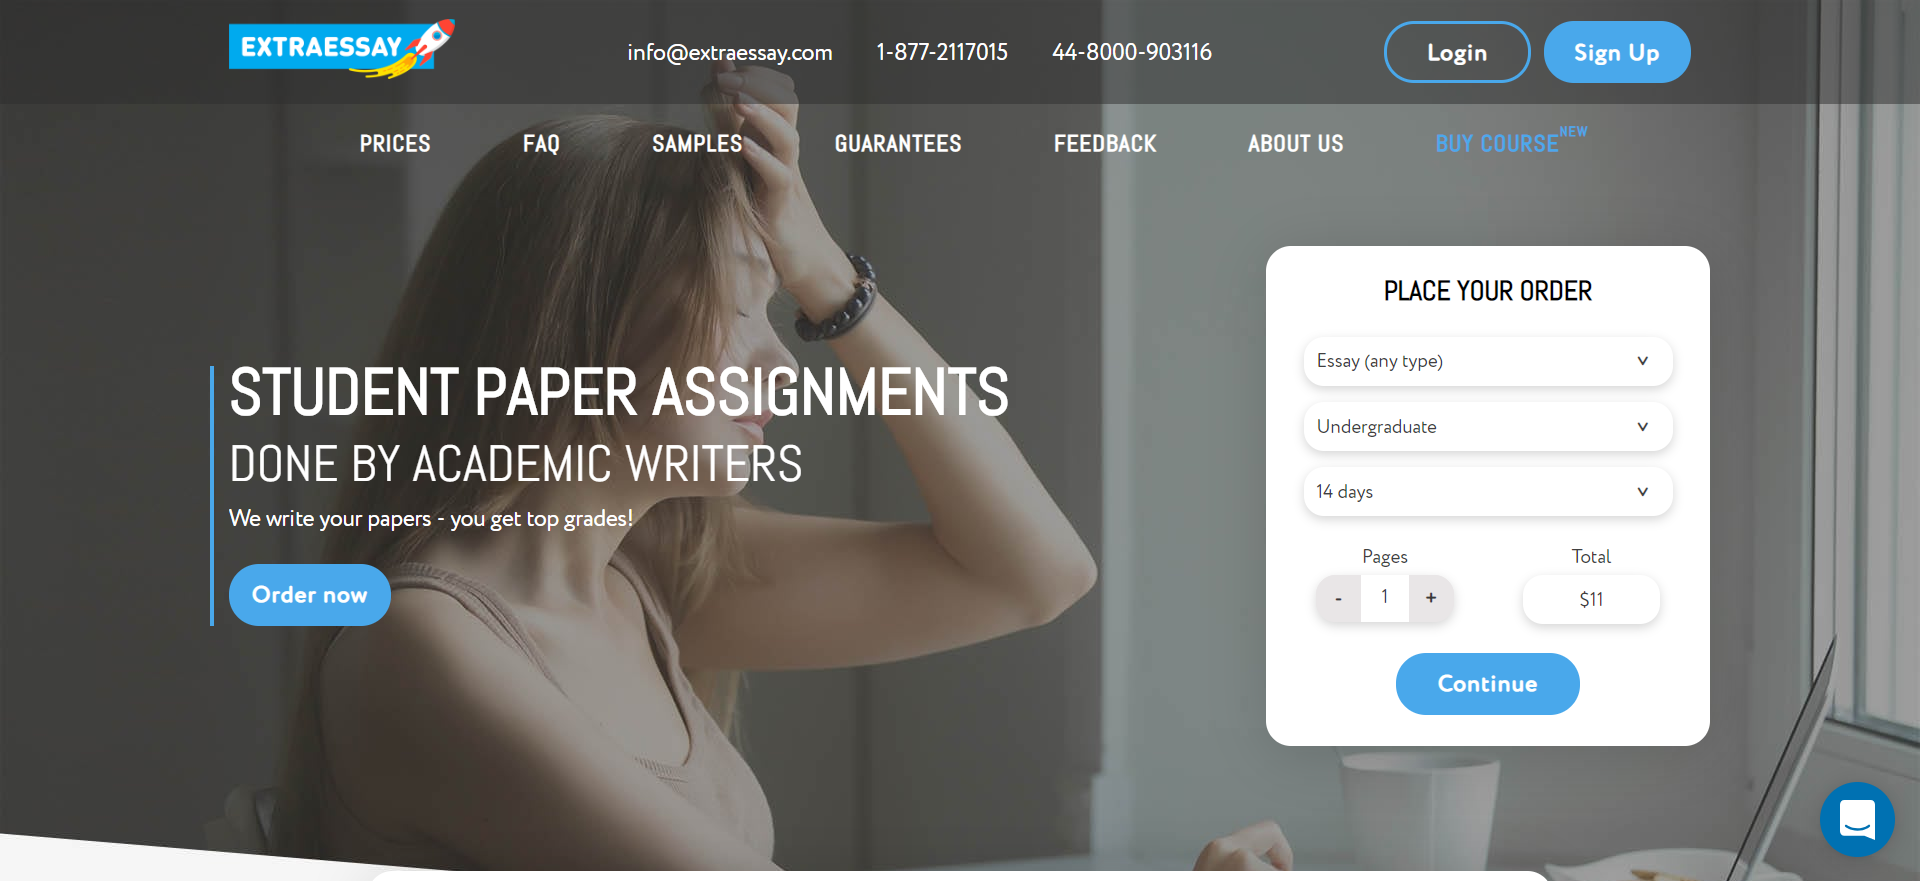 ExtraEssay Review 2020 – Complete Service Evaluation